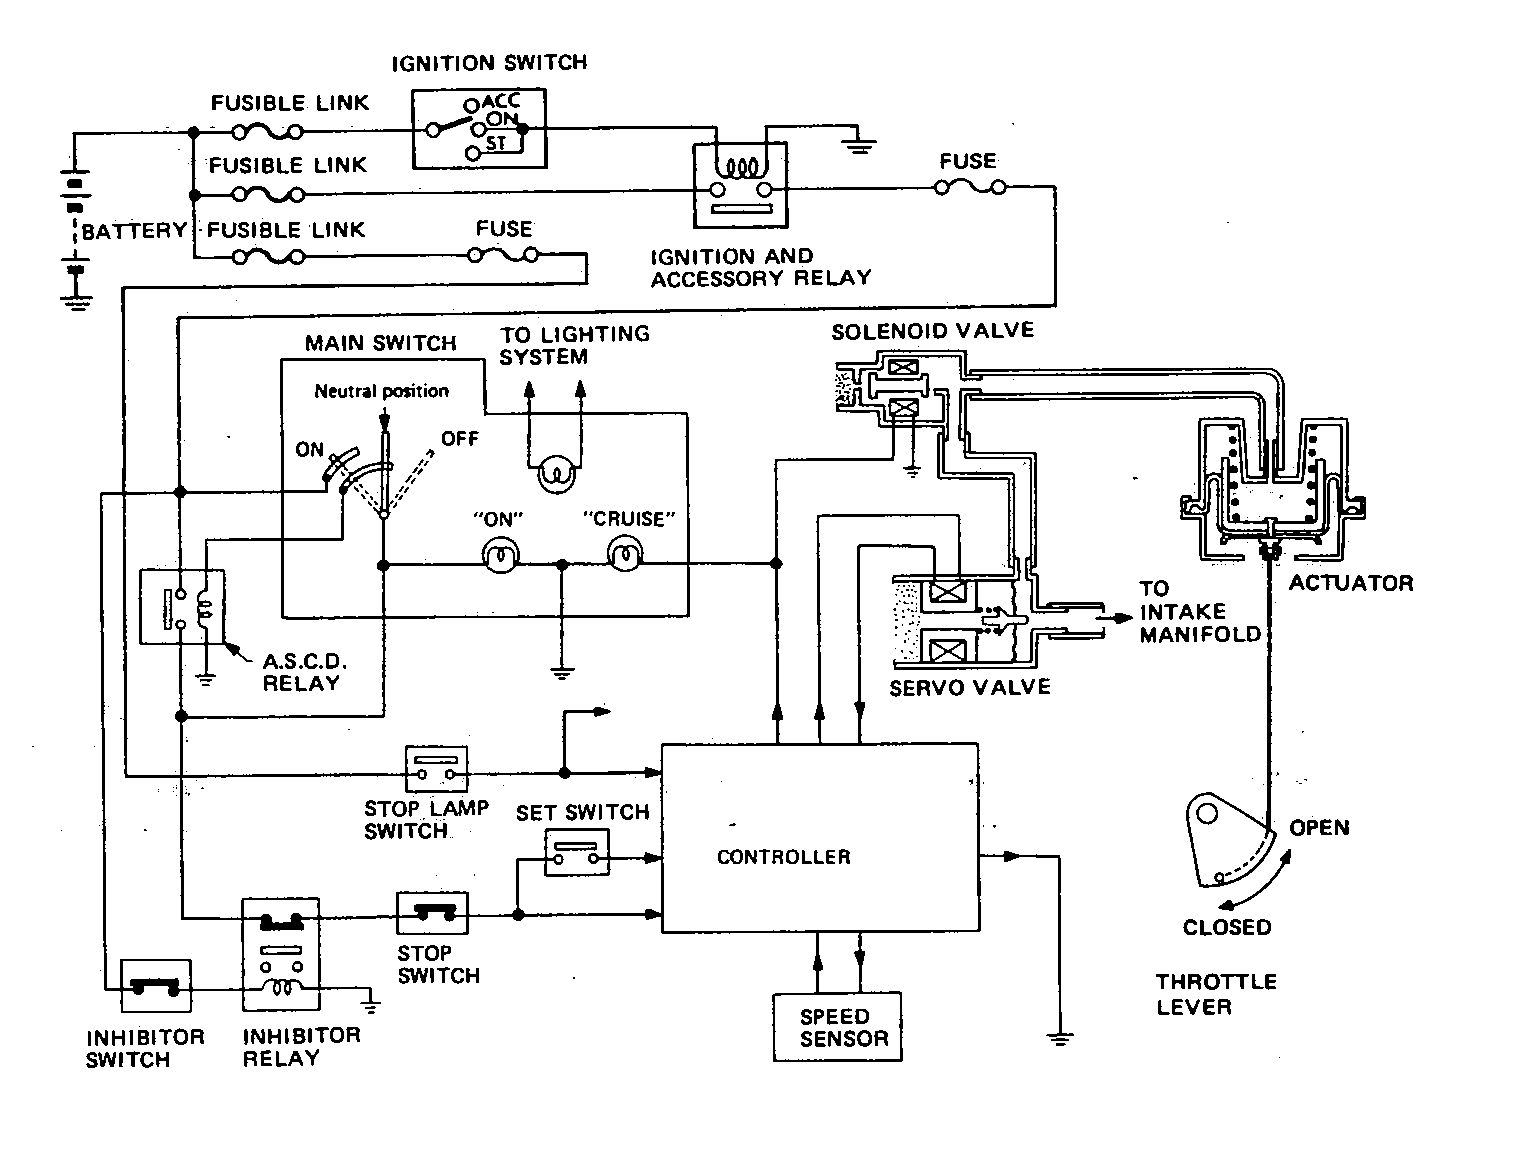 nissan cruise control diagram wiring diagram advancegeneral cruise control diagram wiring diagram home nissan patrol cruise control wiring diagram nissan cruise control diagram